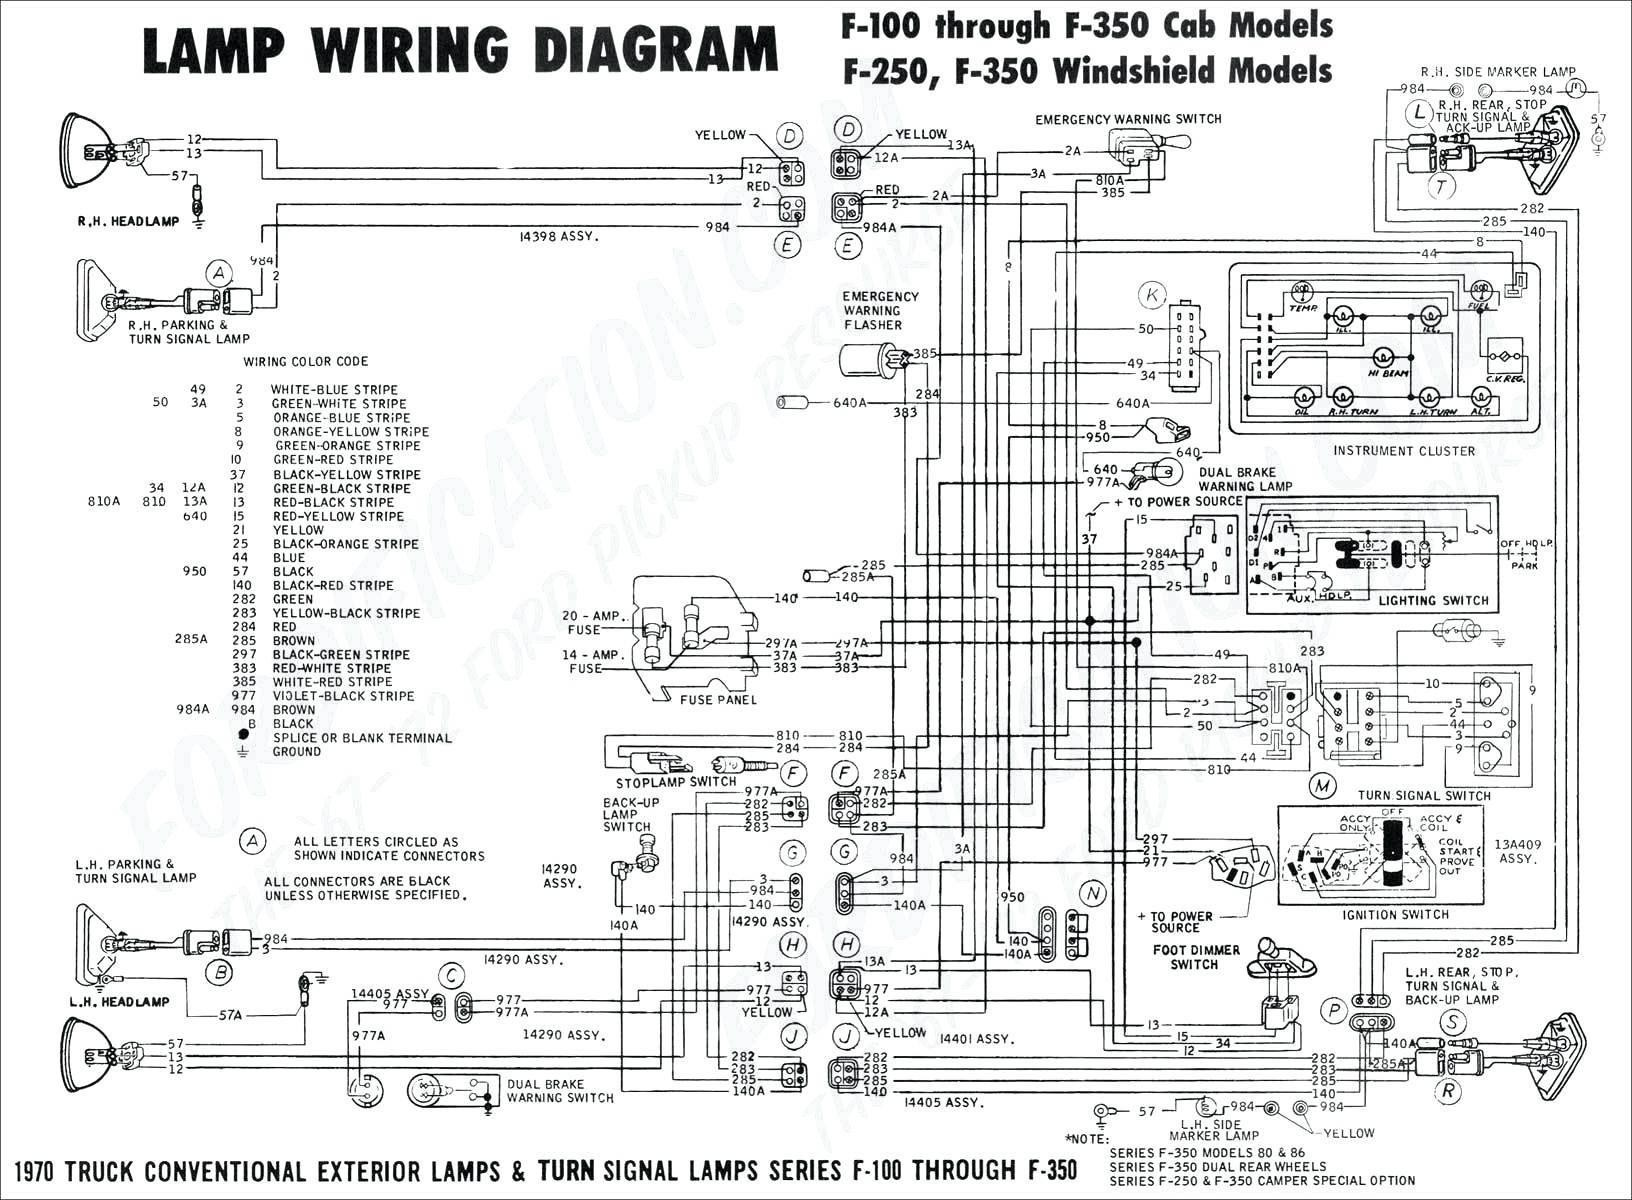 2000 dodge neon engine diagram 1999 dodge ram 2500